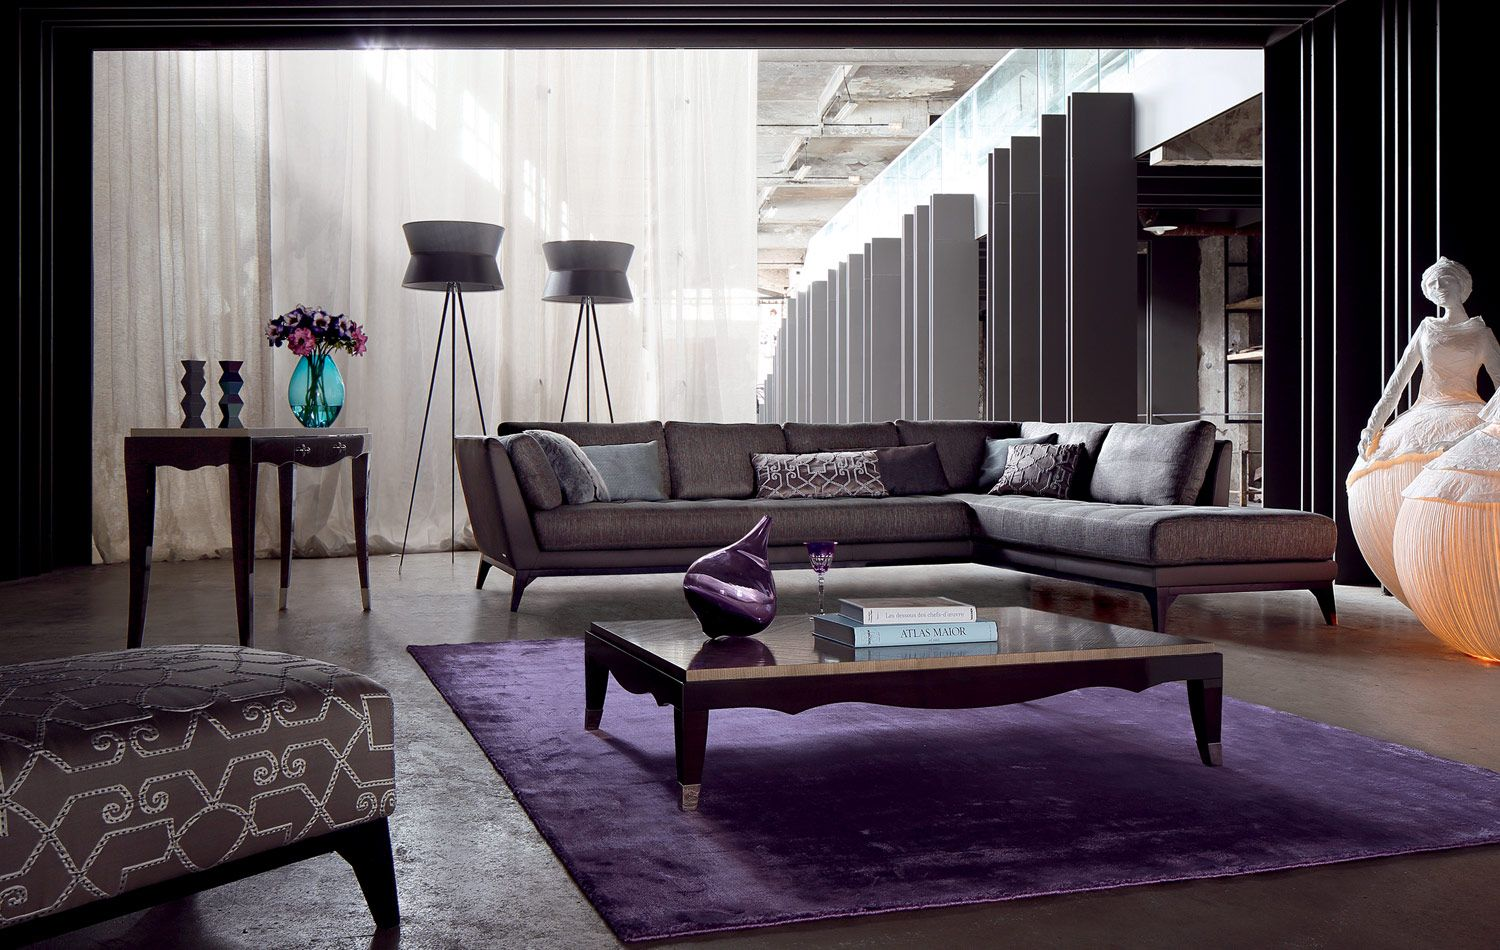 roche bobois perception modular sofa living room pinterest wohnzimmer wohnzimmer design. Black Bedroom Furniture Sets. Home Design Ideas